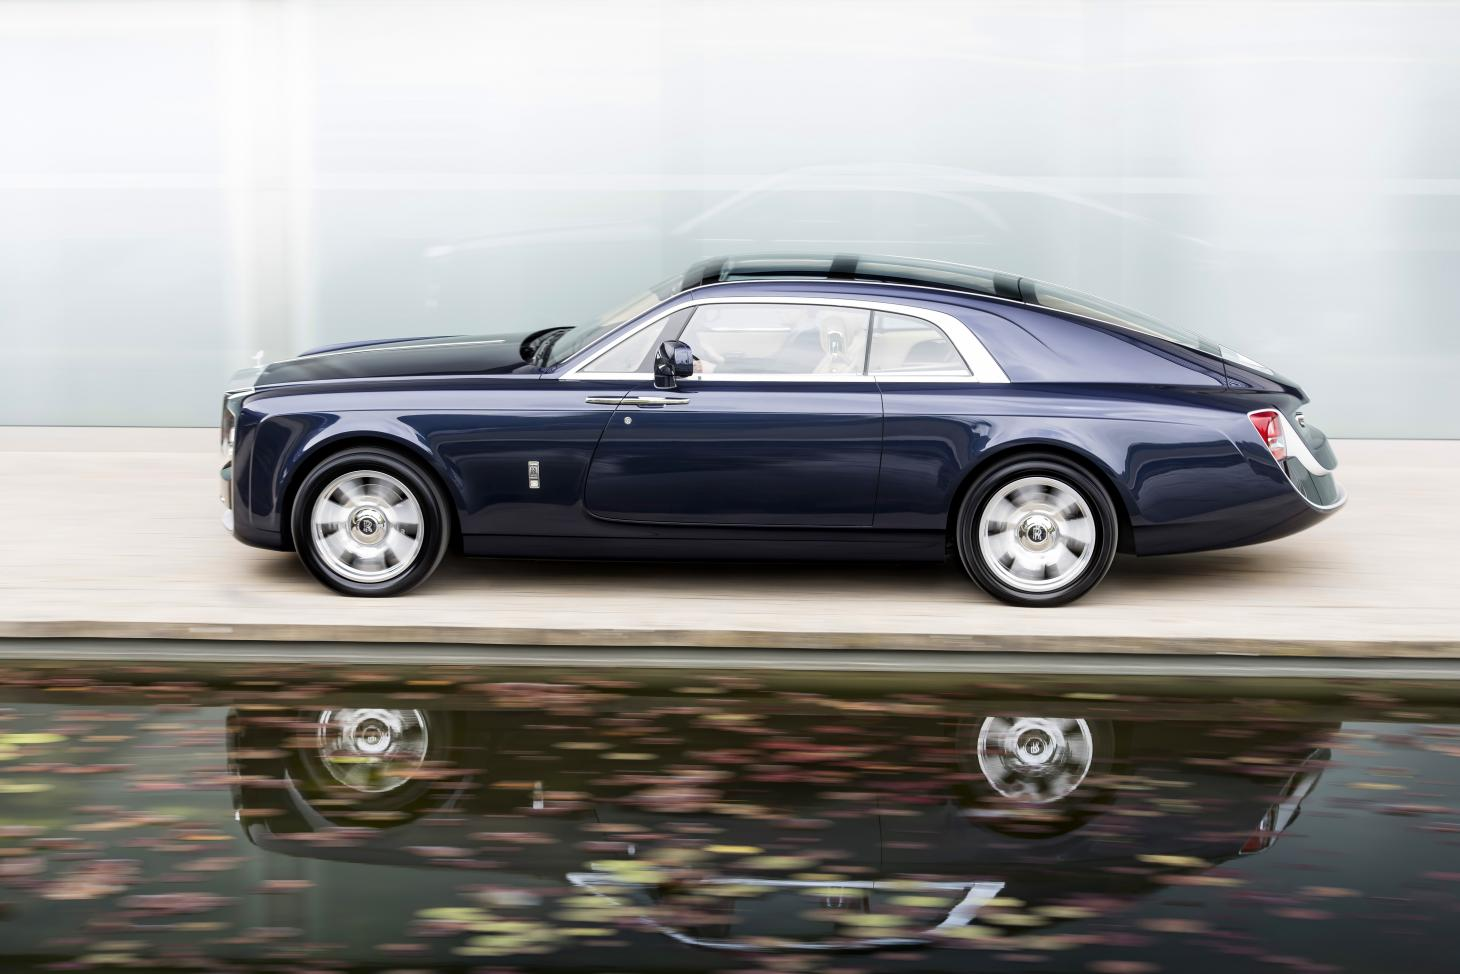 The 2017 Rolls-Royce Sweptail